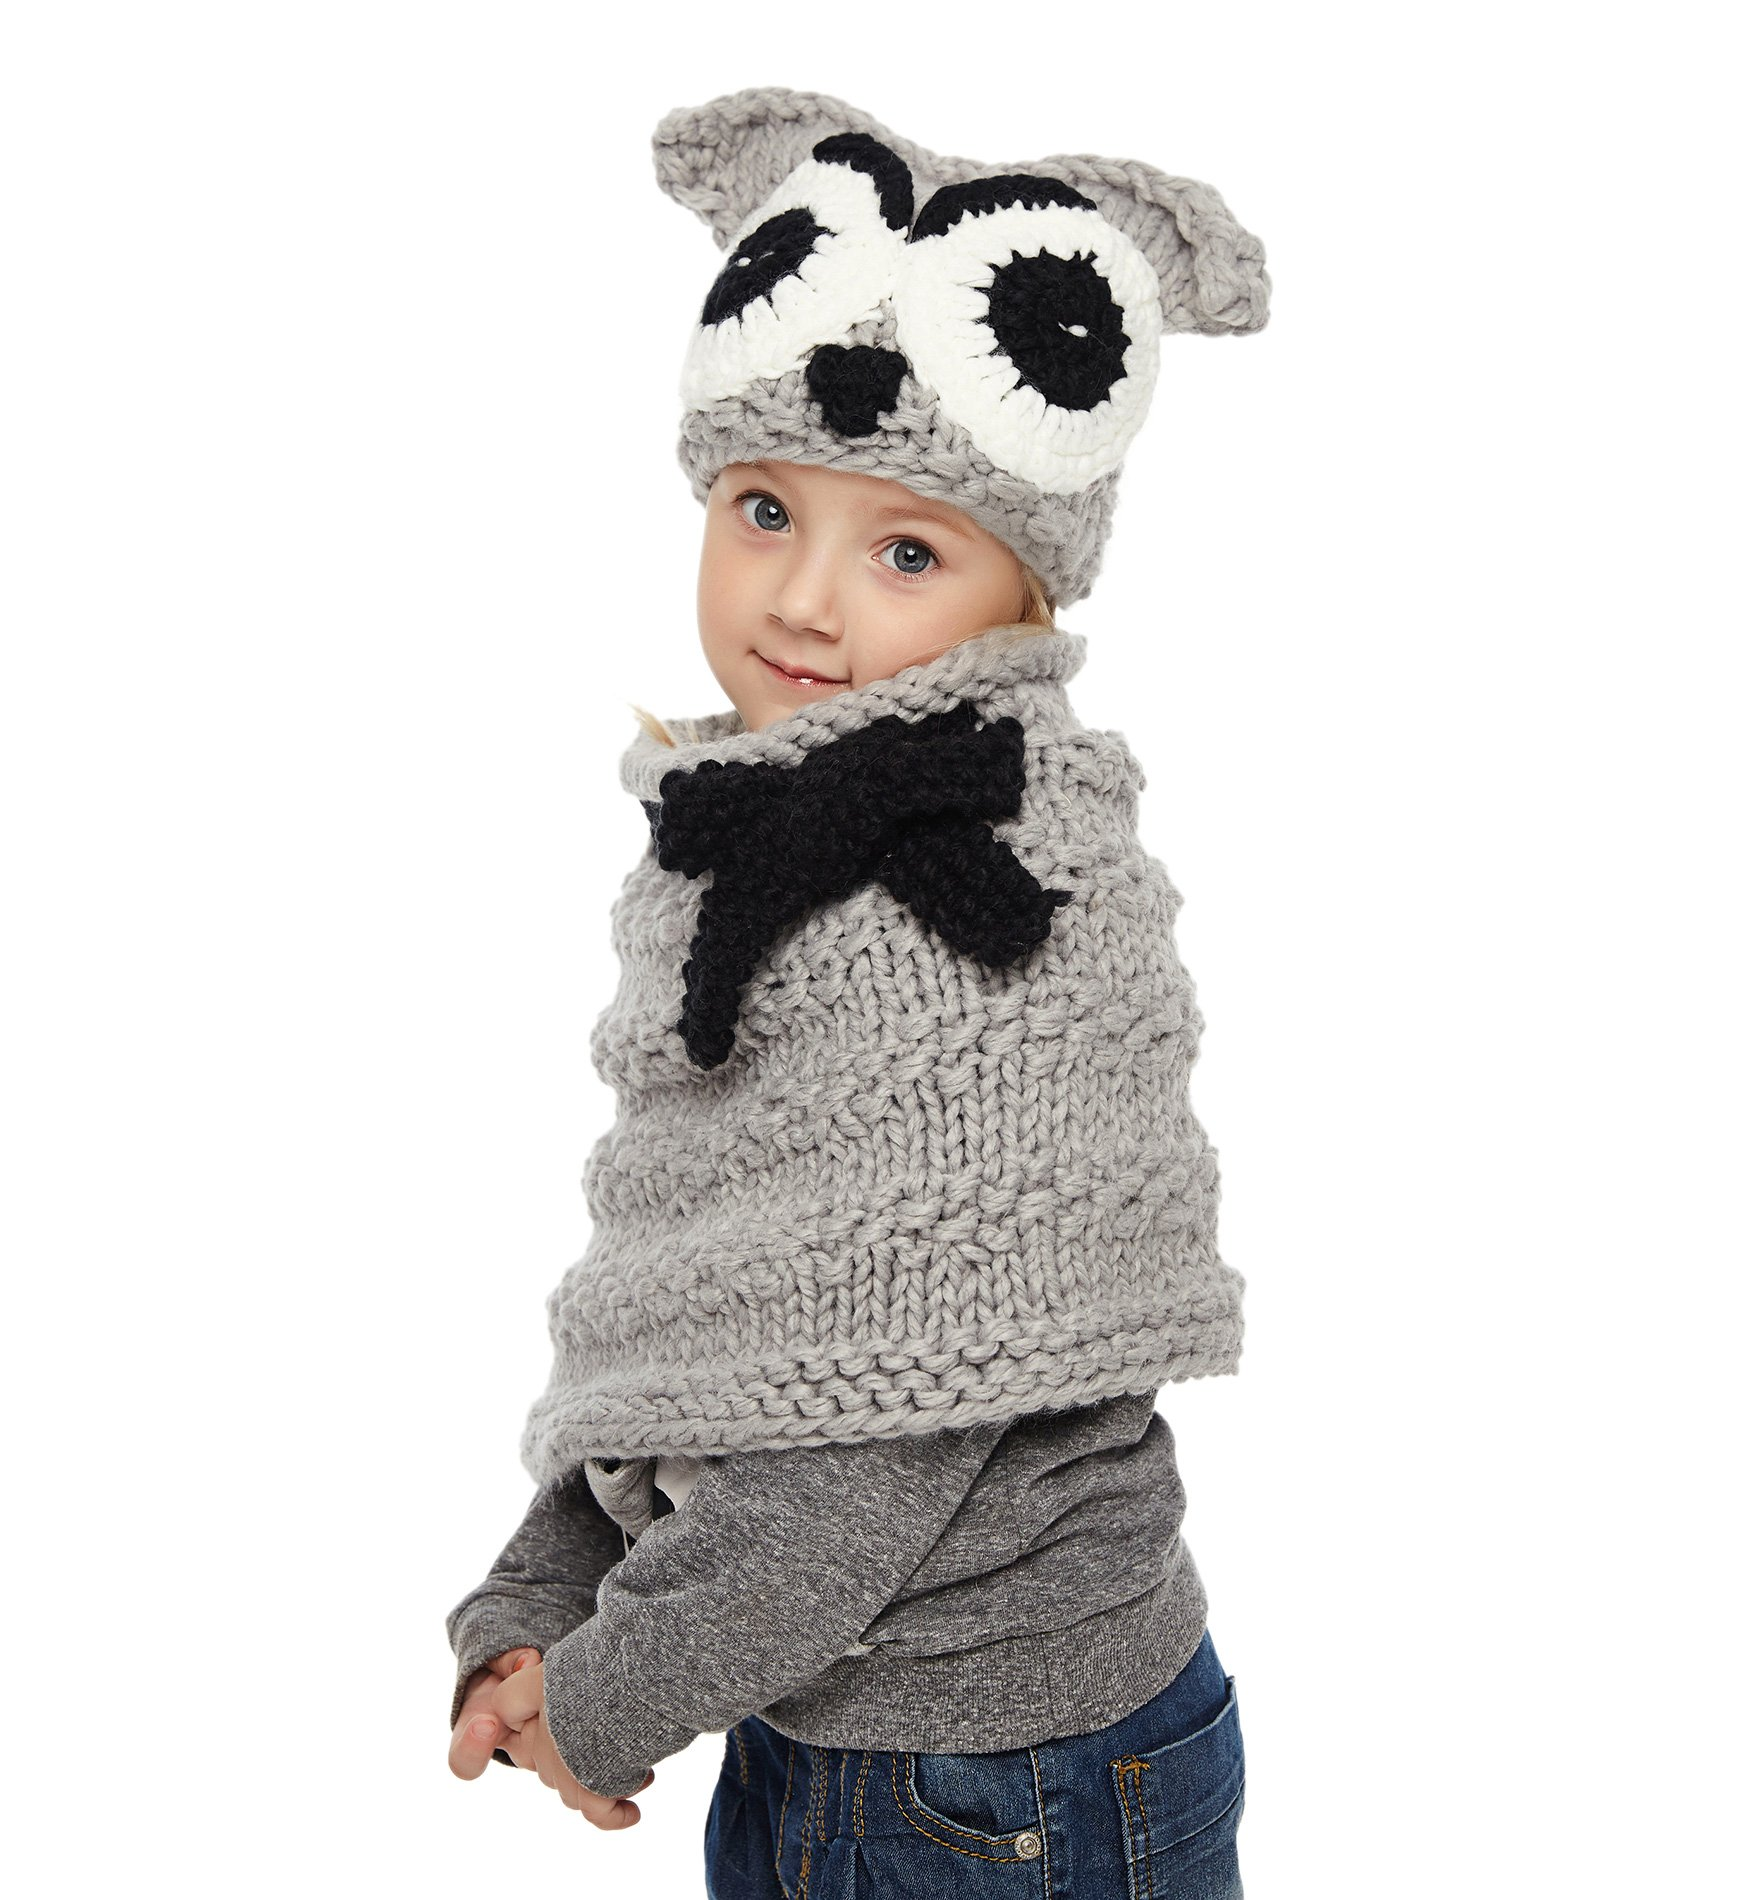 Sumolux Girls Kids Warm Owl Hats and Scarf Set Knitted Coif Hood/Shawl Beanies for Winter by Sumolux (Image #3)